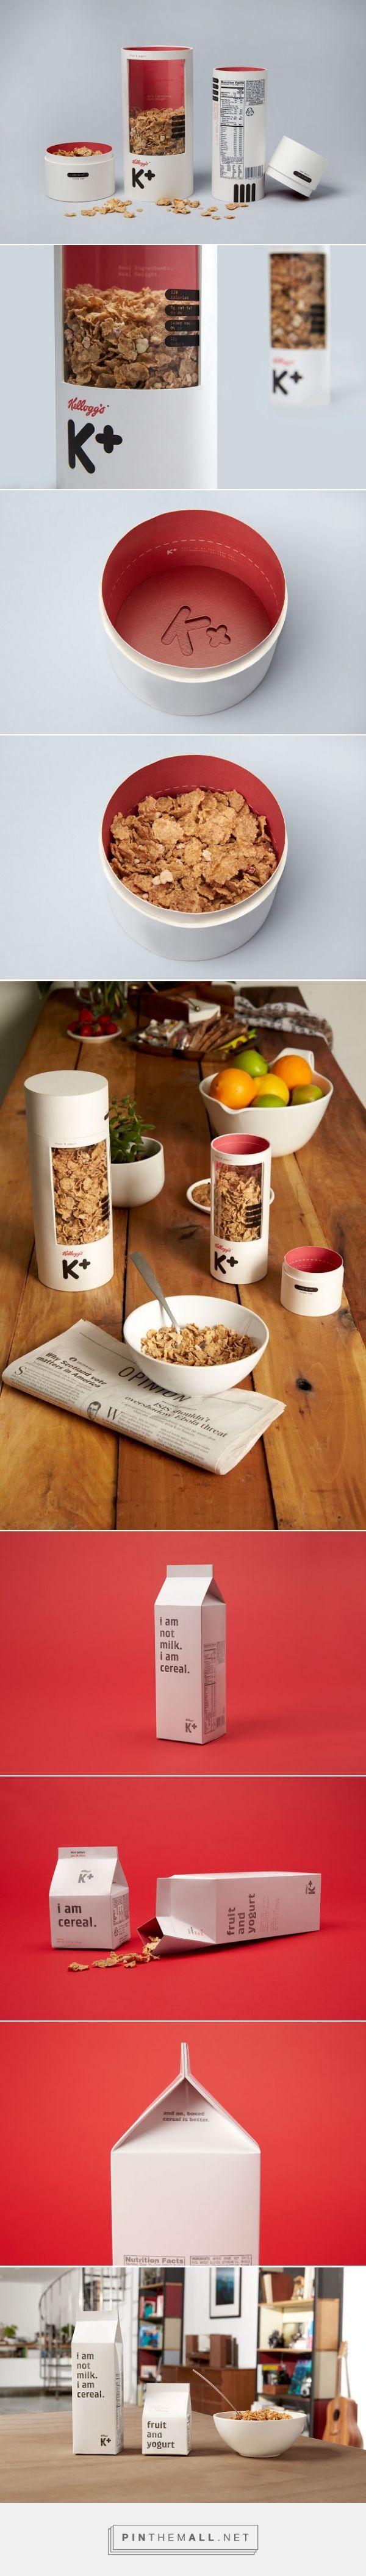 Mun Joo Jane – Cereal for Adults, student packaging concept  Inspiration: to use a milk carton as its easy to fold and functional